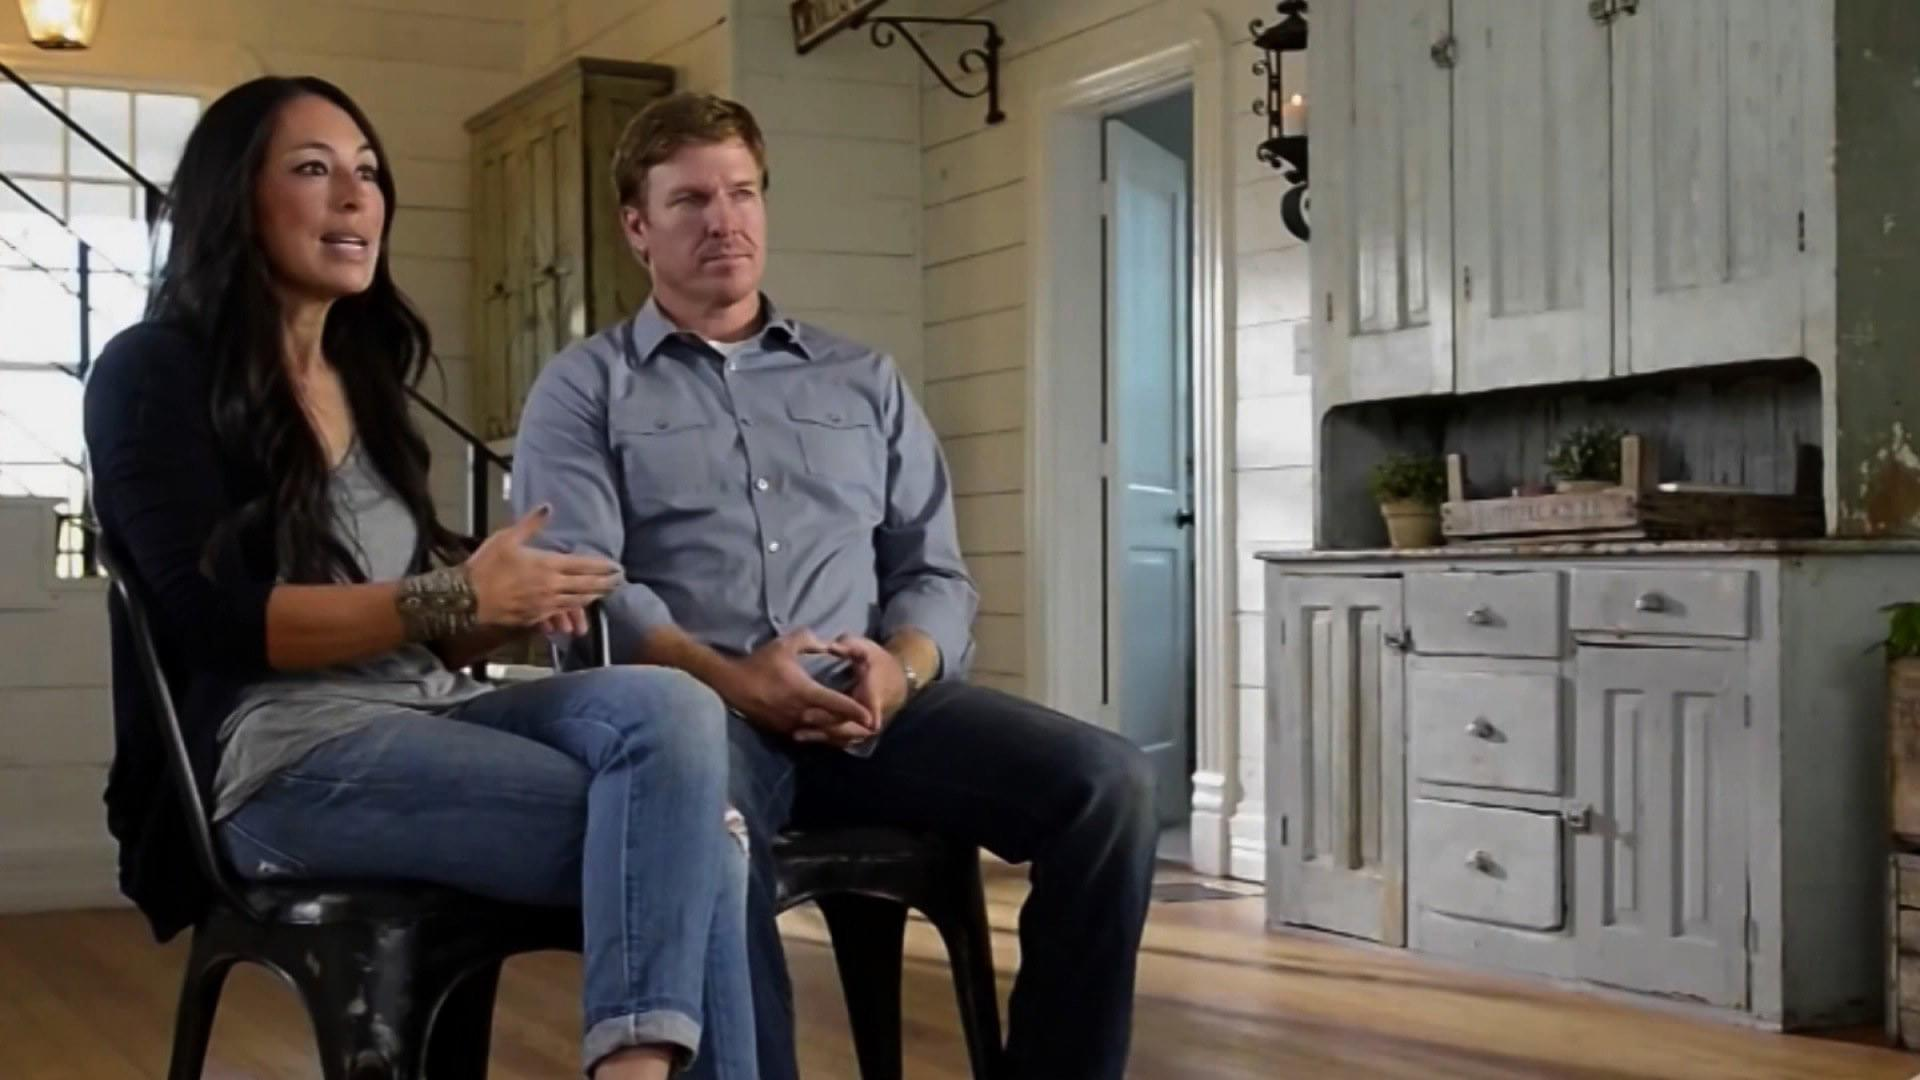 Chips Et Joanna Gaines chip and joanna gaines ready to launch new 'fixer upper